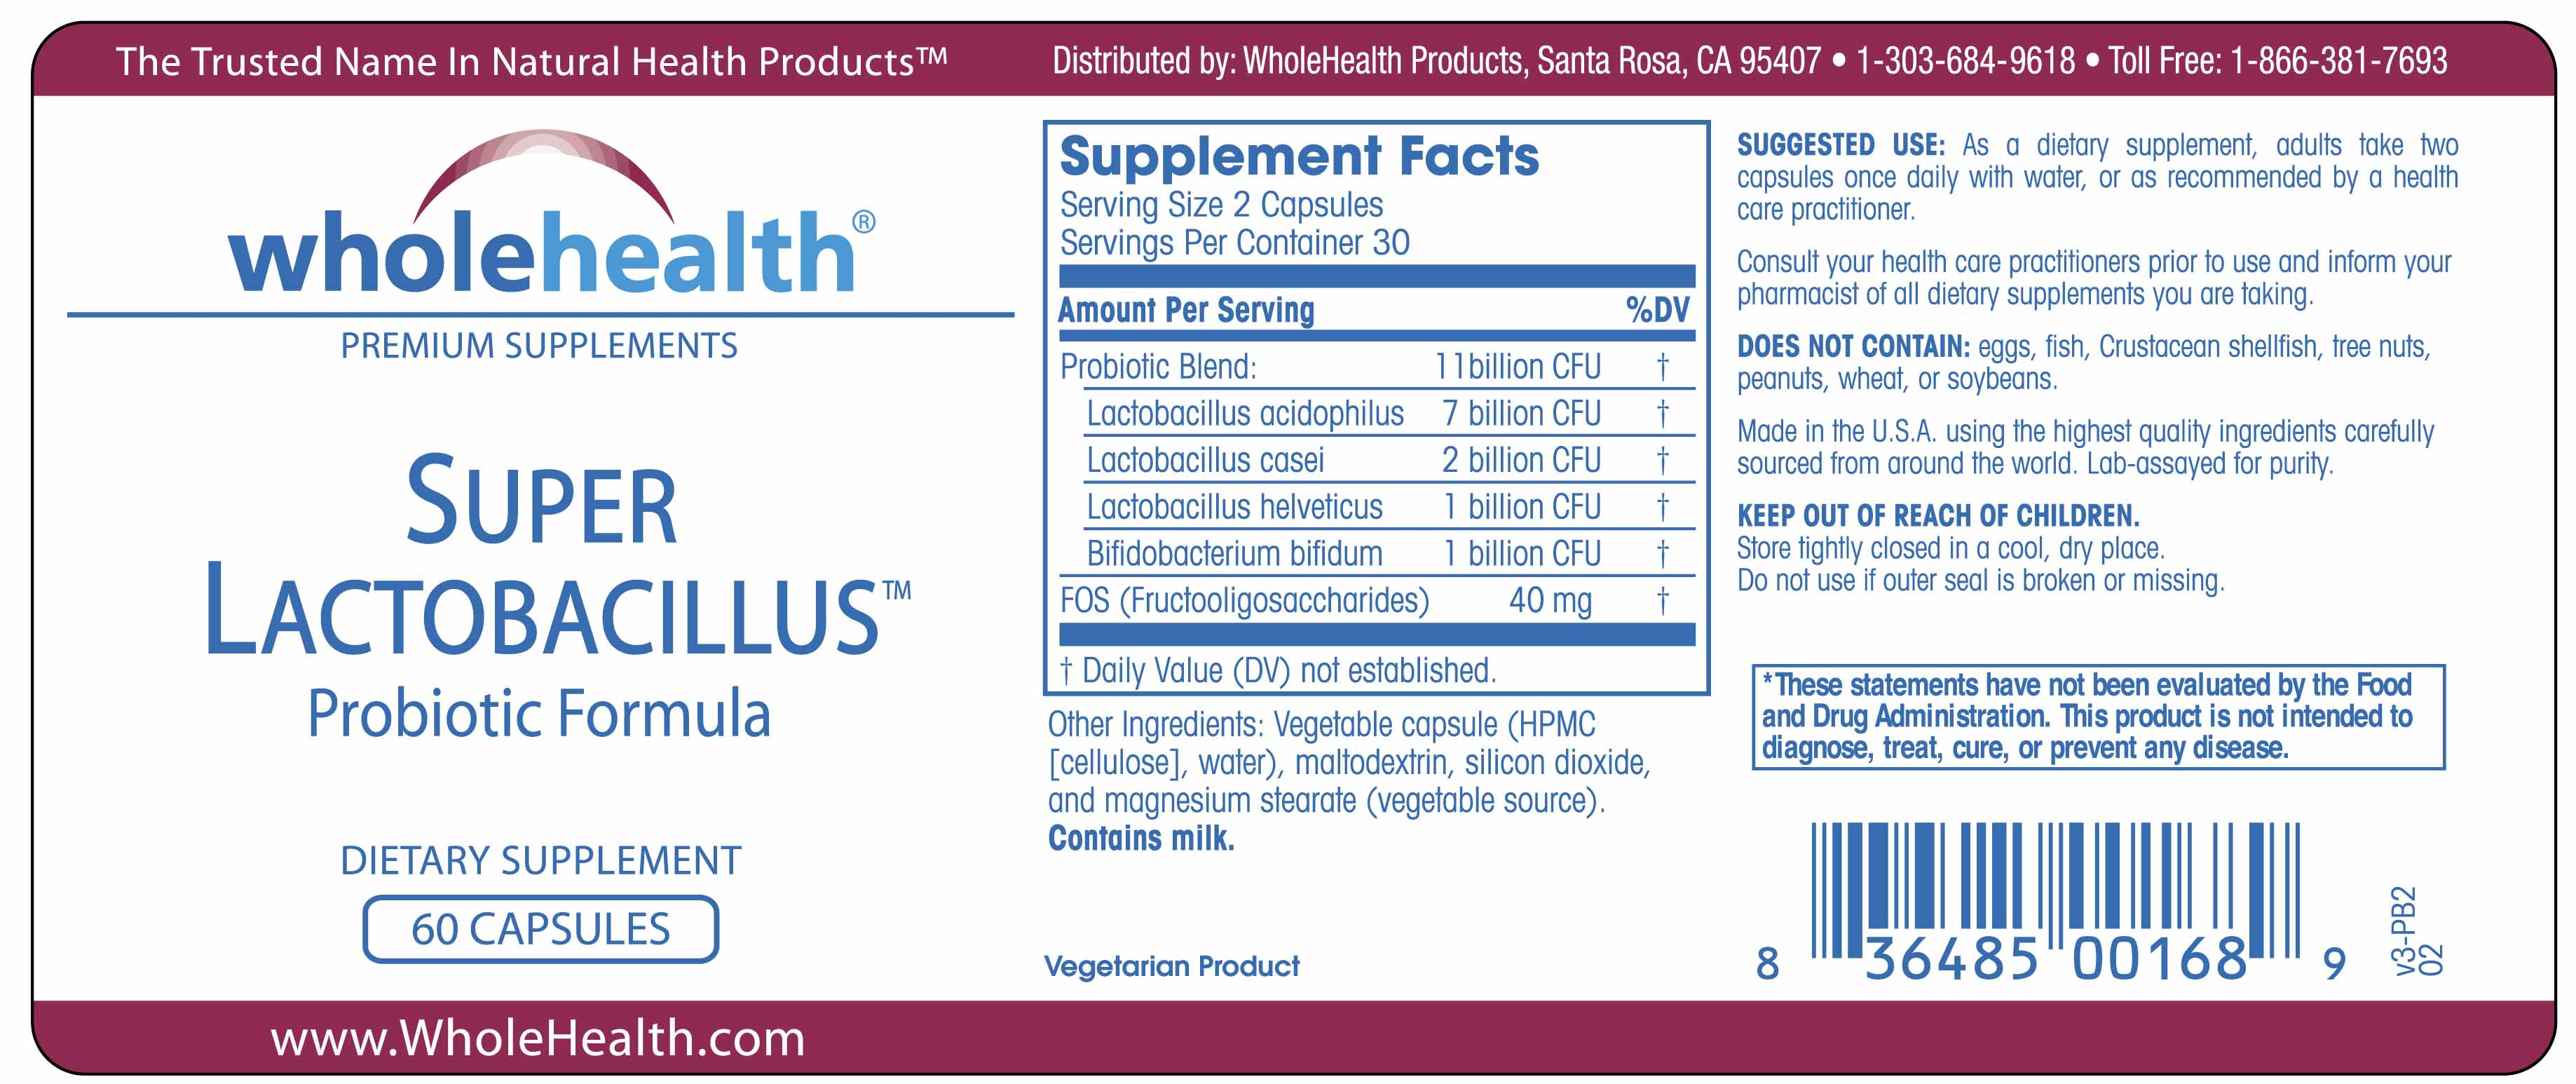 Super Lactobacillus Probiotics with FOS 11 Billion CFU (60 Vegetarian Capsules) Supplement Facts Label